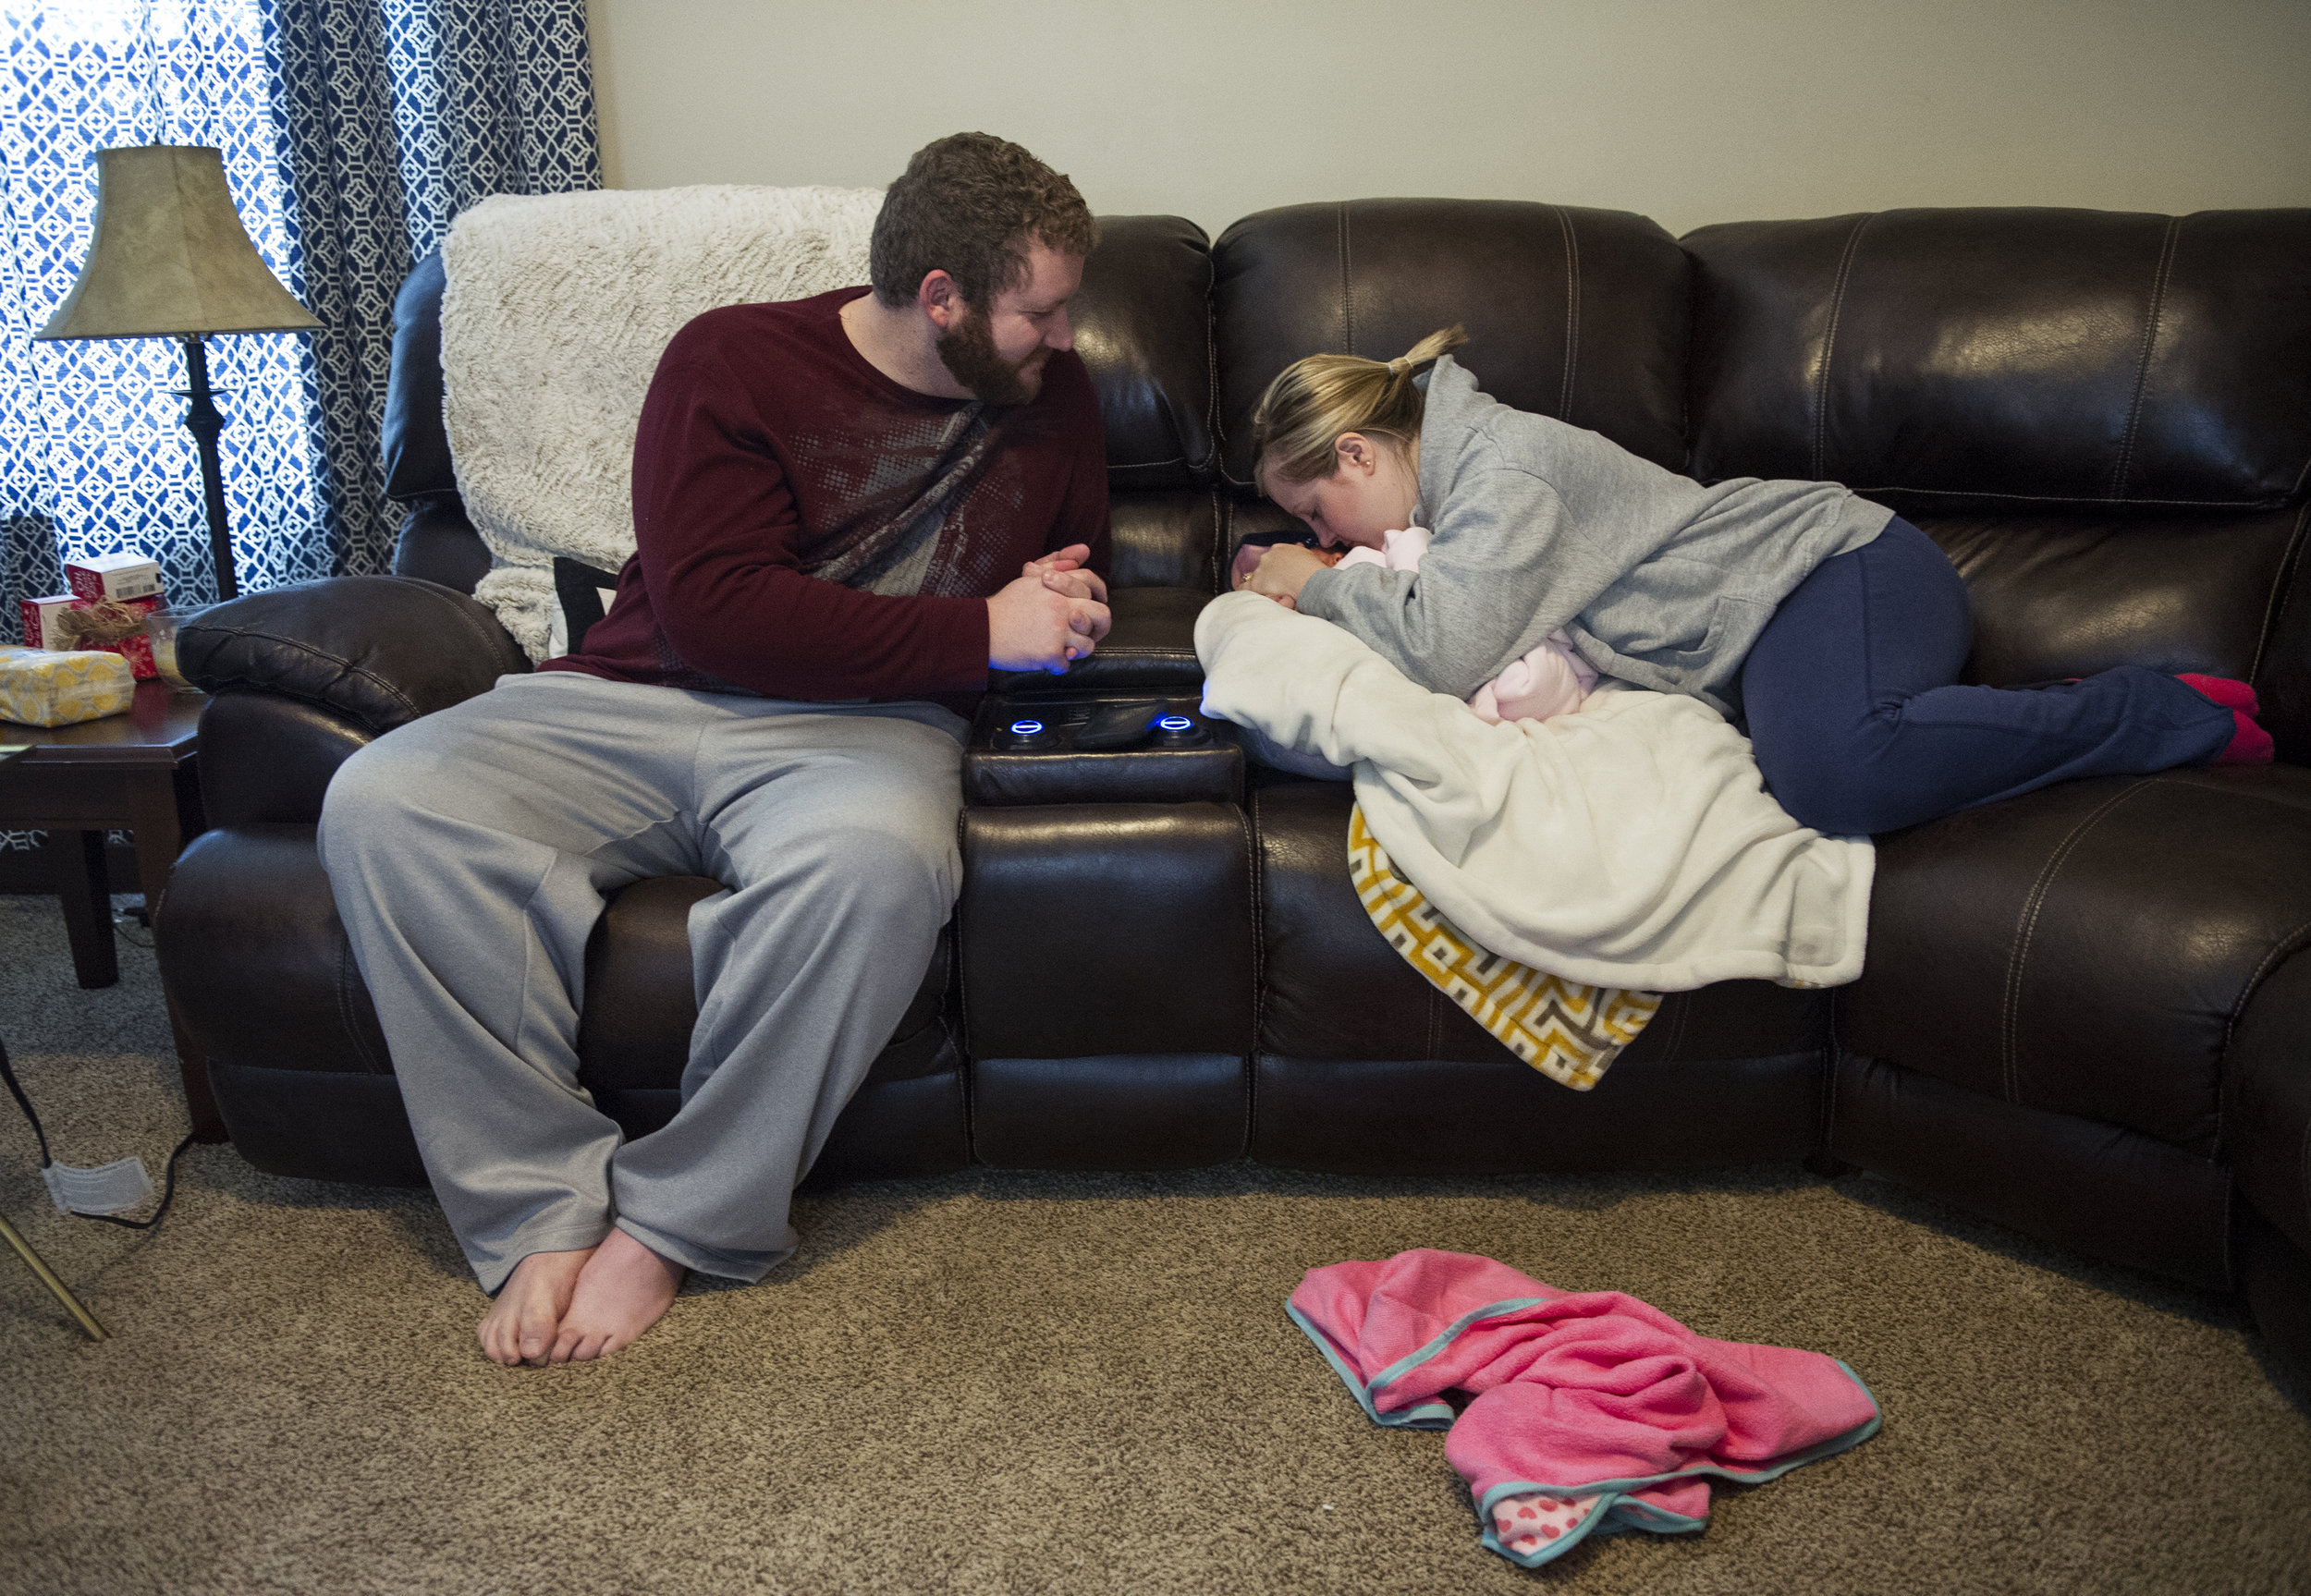 """Michael and Erickia gush over Gracelyn at their home in Evansville Thursday Dec. 11, 2014. Since they brought her home they have spent their time enjoying getting to know her and showing her off to their friends and relatives. """"My heart is overflowing with love,"""" Erickia said."""